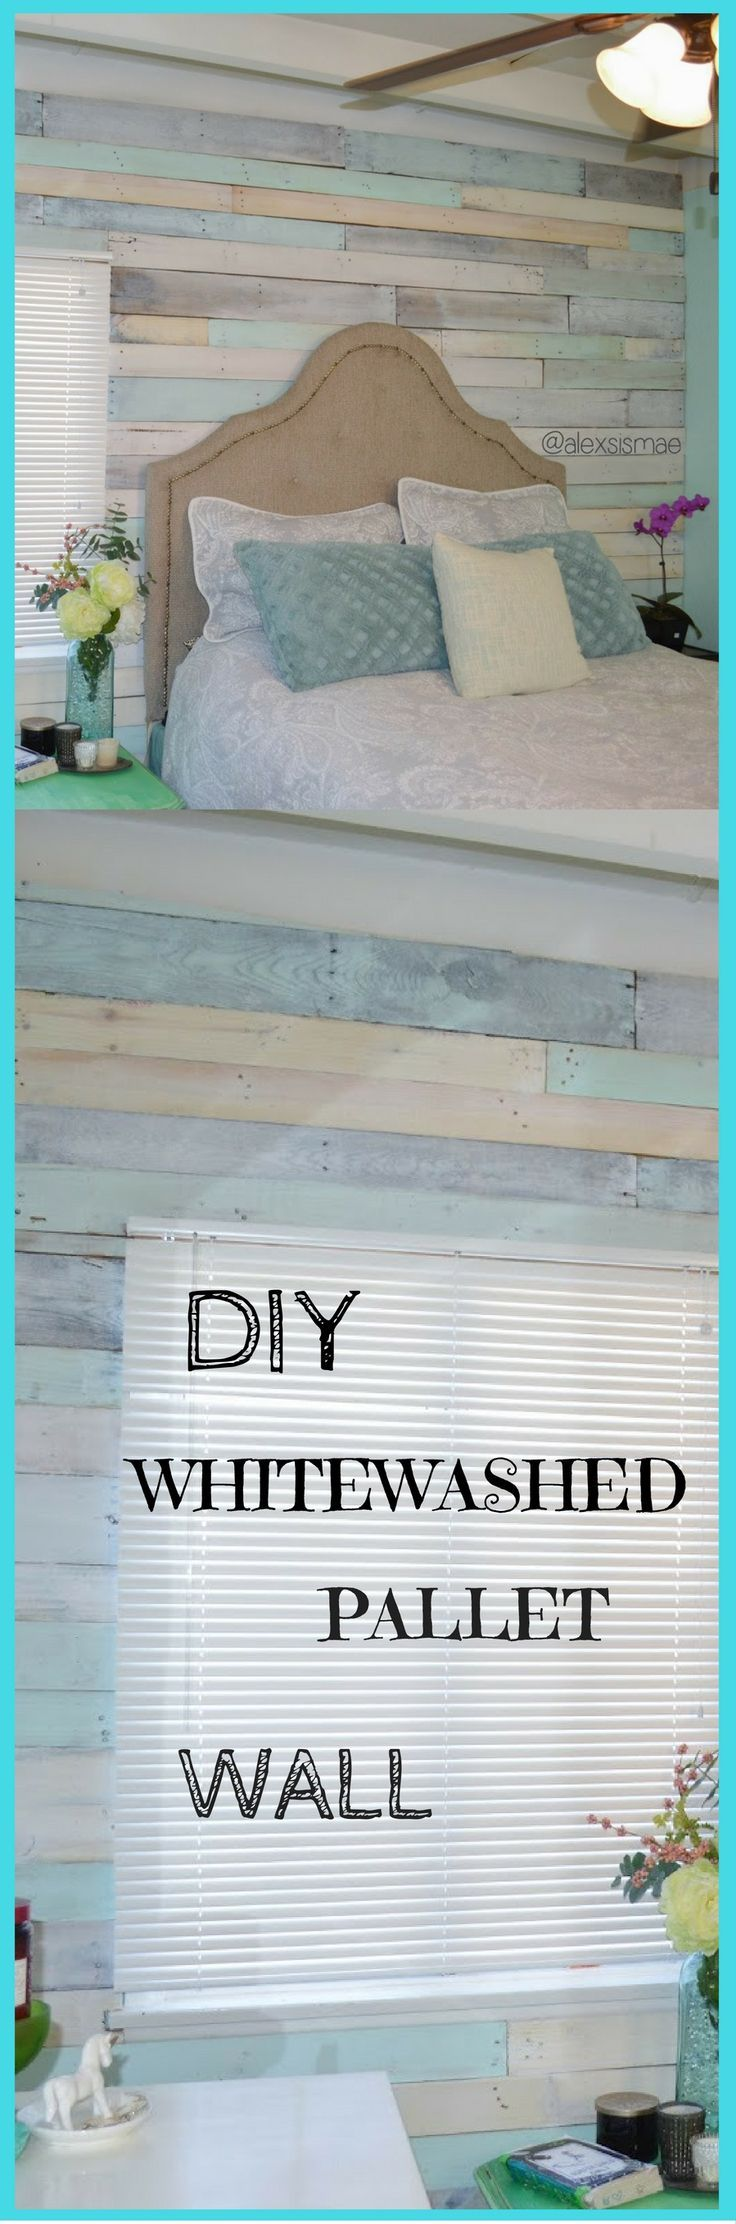 whitewashing furniture with color. DIY Whitewashed Pallet Wall. Very Cool Look For Little Money\u2026 Whitewashing Furniture With Color N